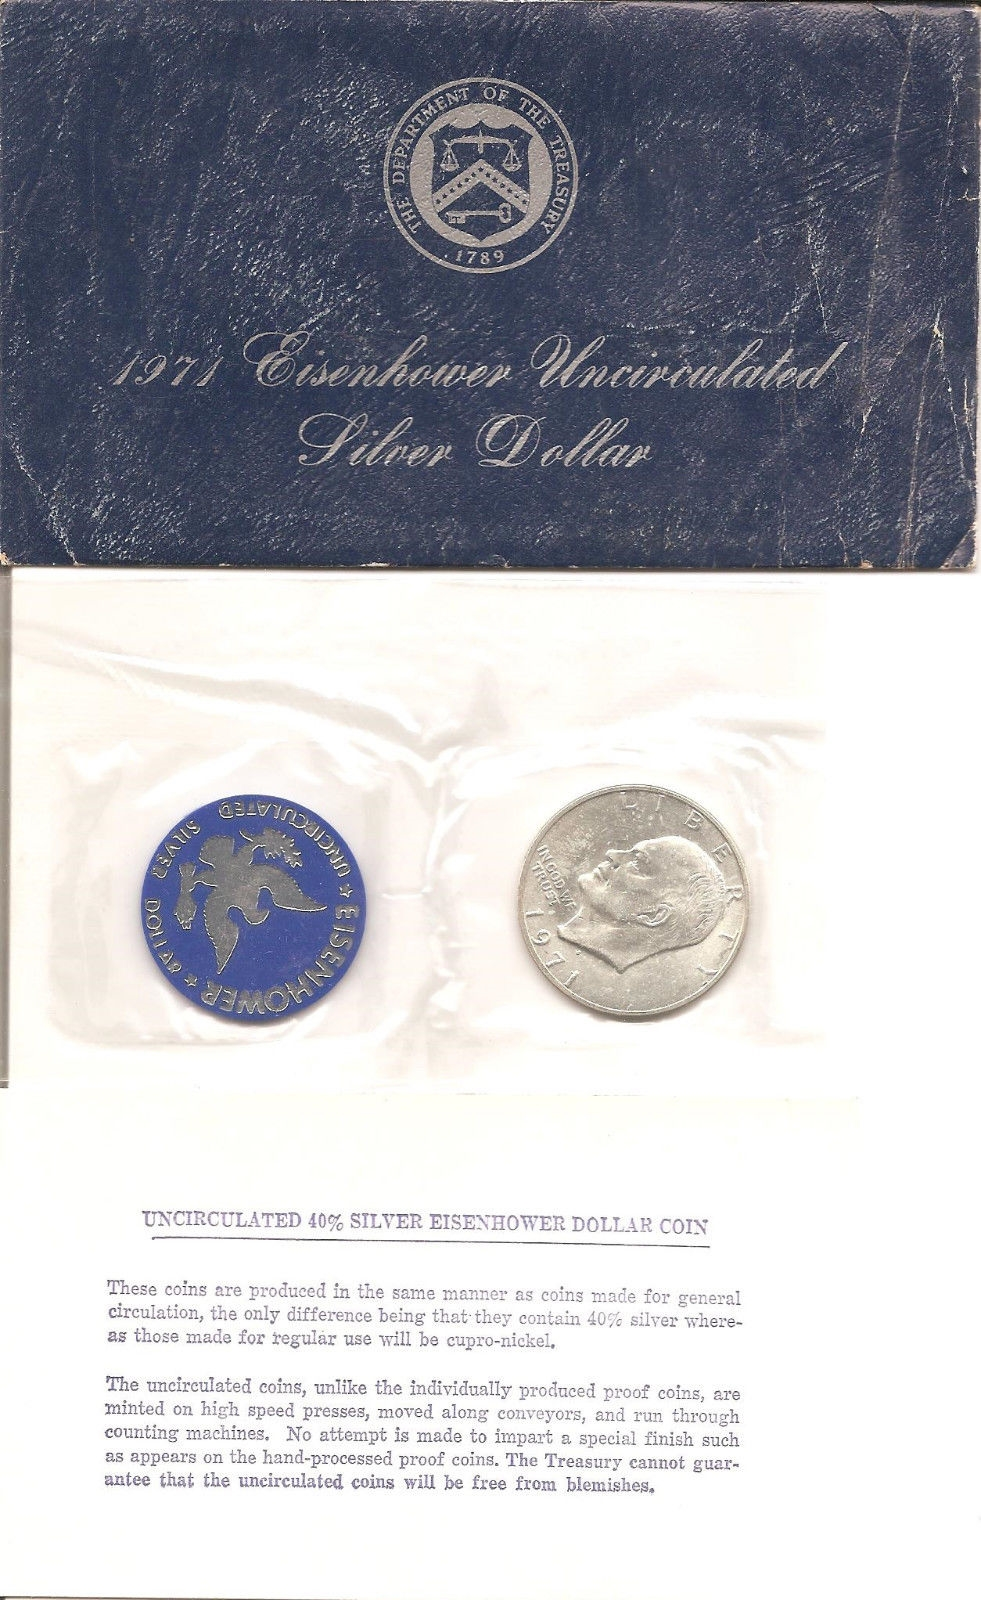 1971 40% Silver Eisenhower Ike Dollar Uncirculated With Mint Envelope and COA